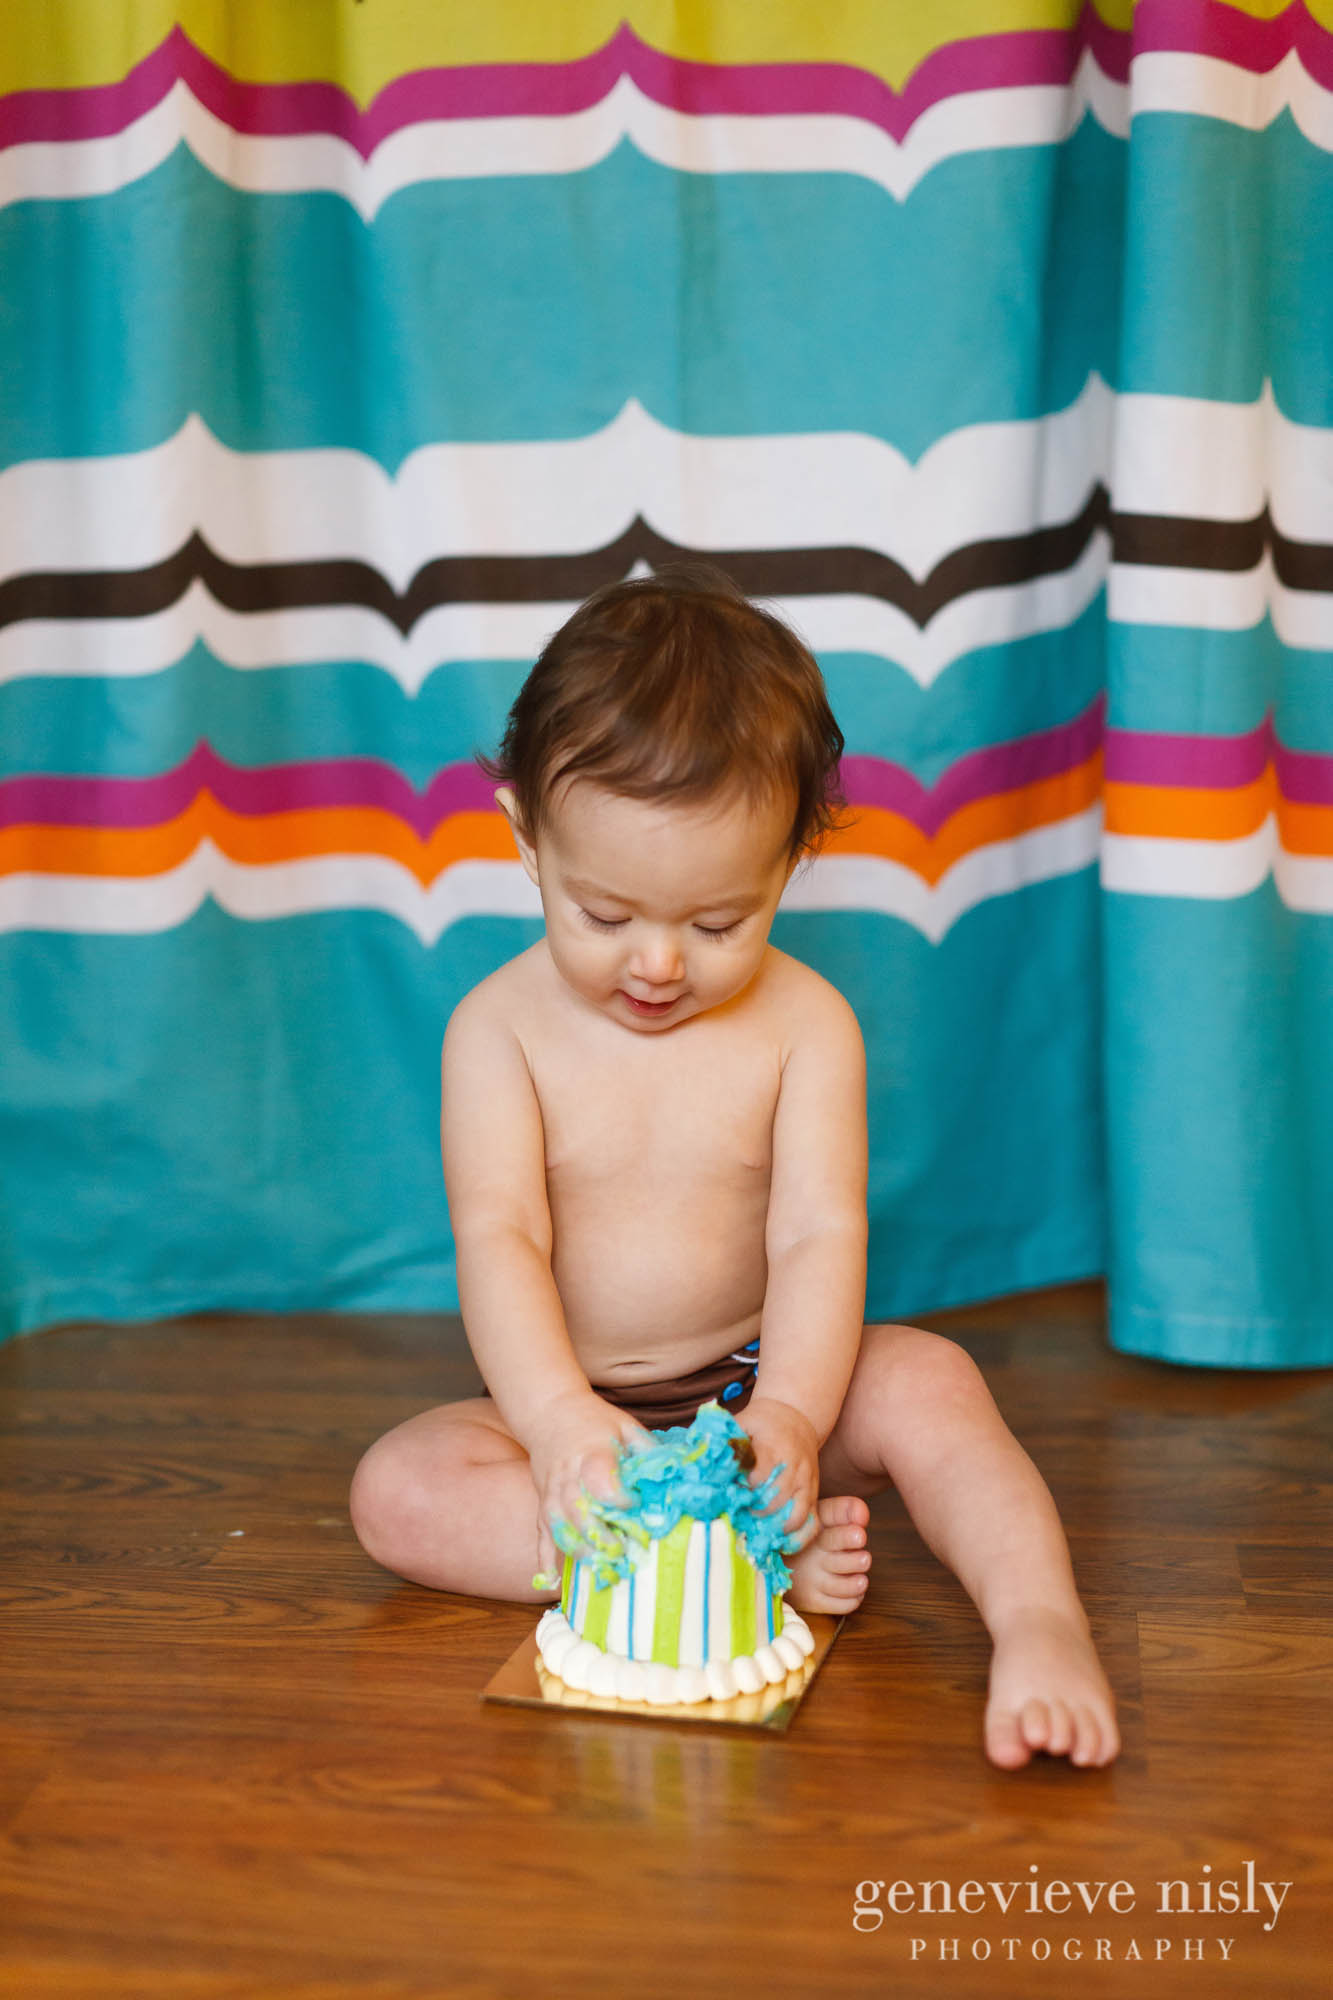 kael-birthday-005-private-residence-stow-portrait-photographer-genevieve-nisly-photography